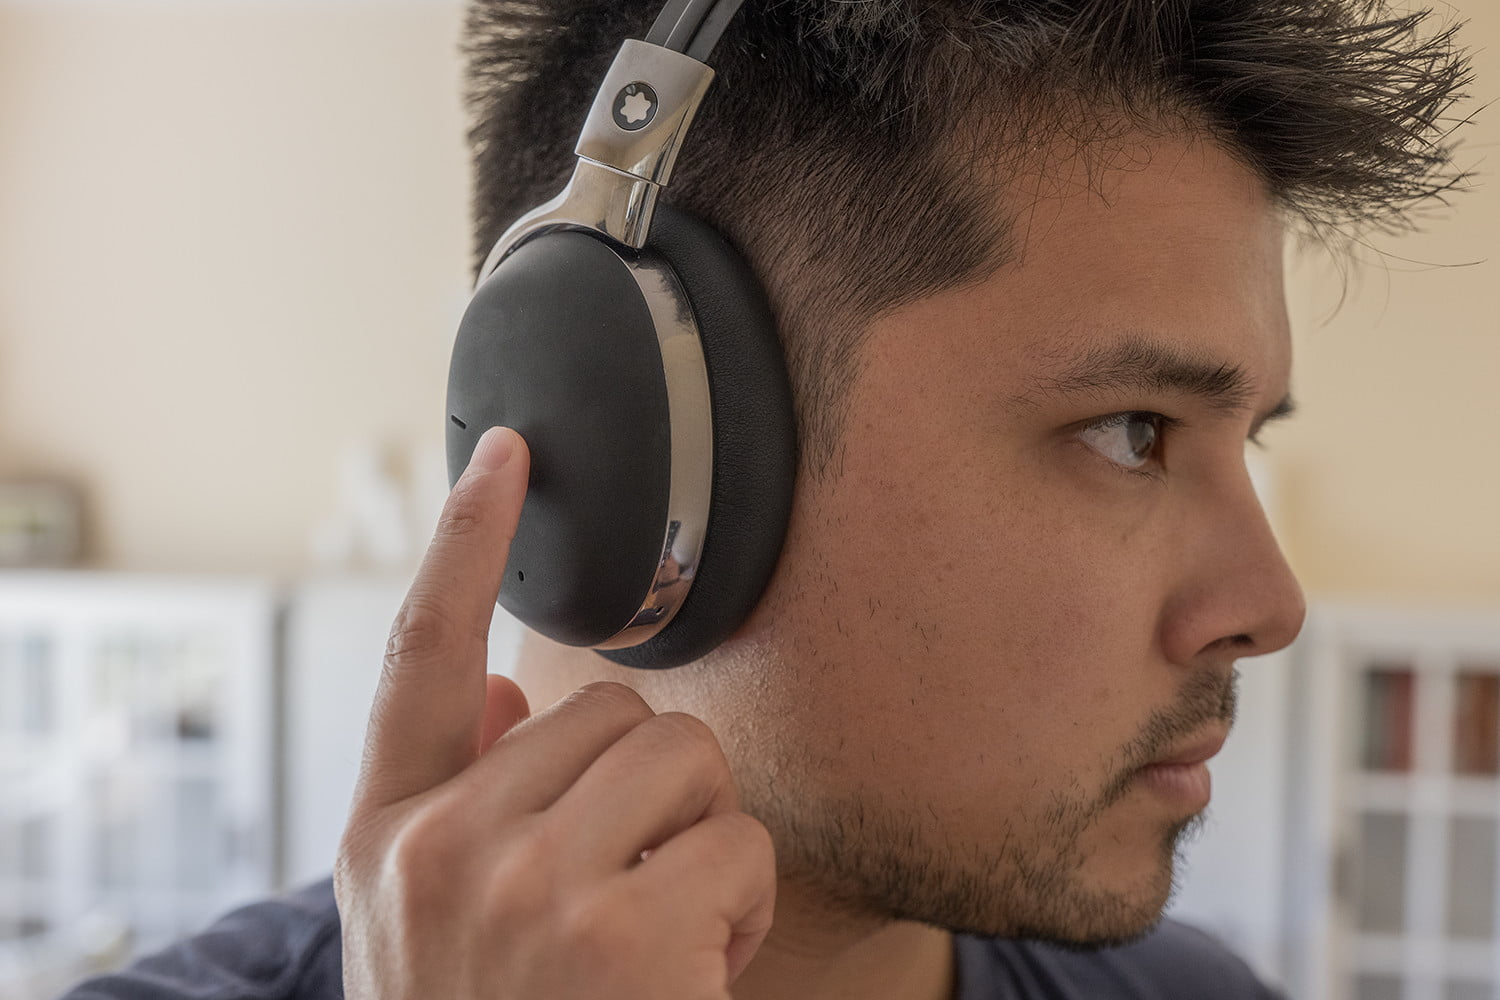 montblanc mb01 headphones review 7